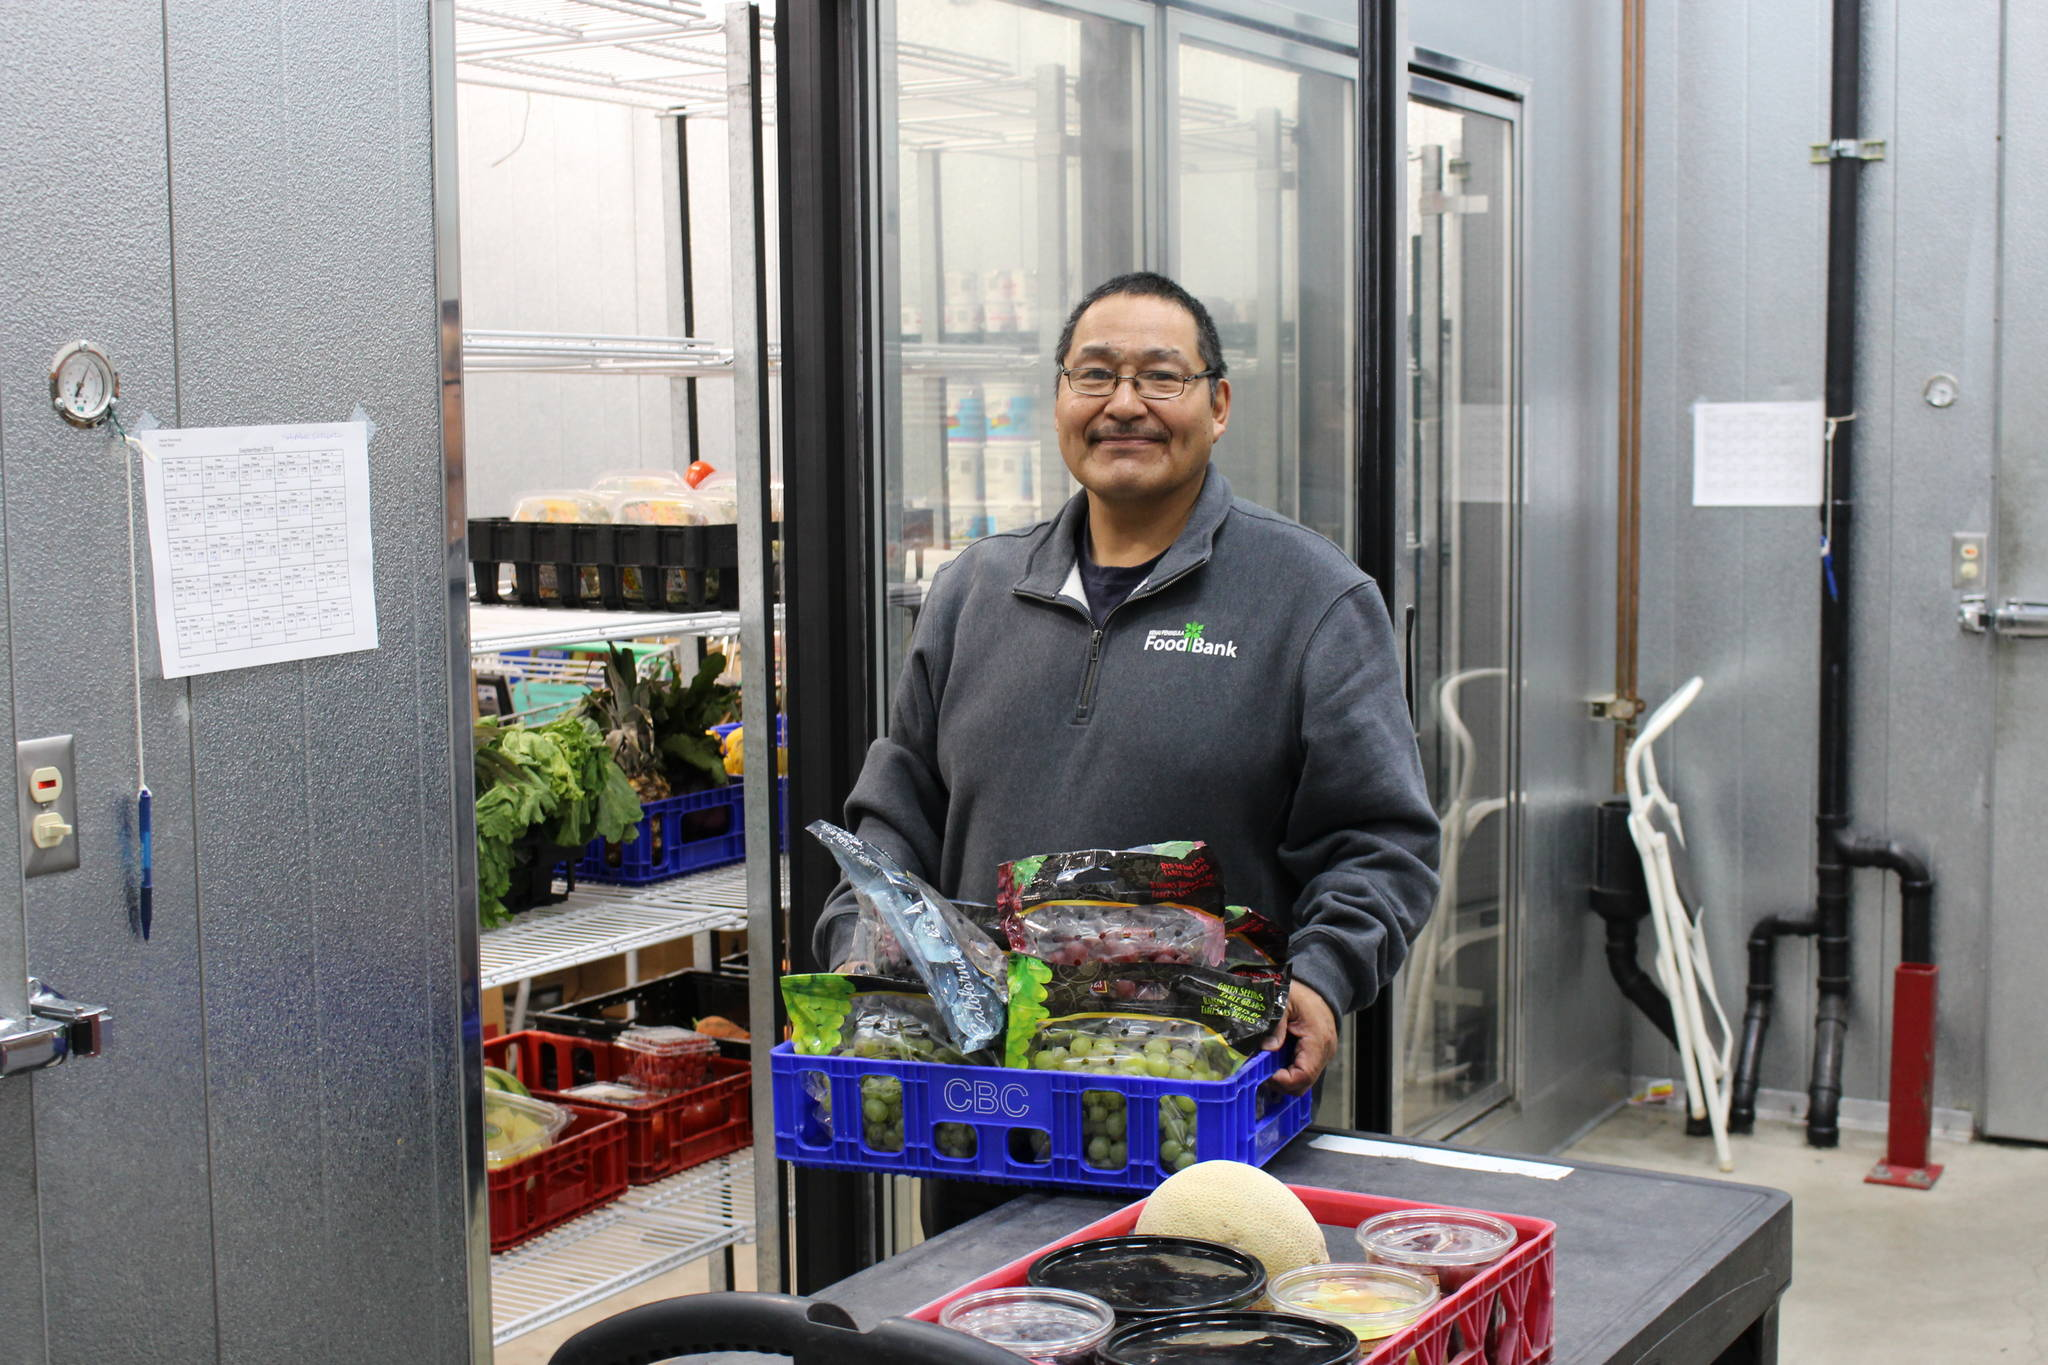 Food Bank employee Francis Bell stocks up the cooler at the Kenai Peninsula Food Bank in Soldotna, Alaska on Sept. 20, 2019. (Photo by Brian Mazurek/Peninsula Clarion)